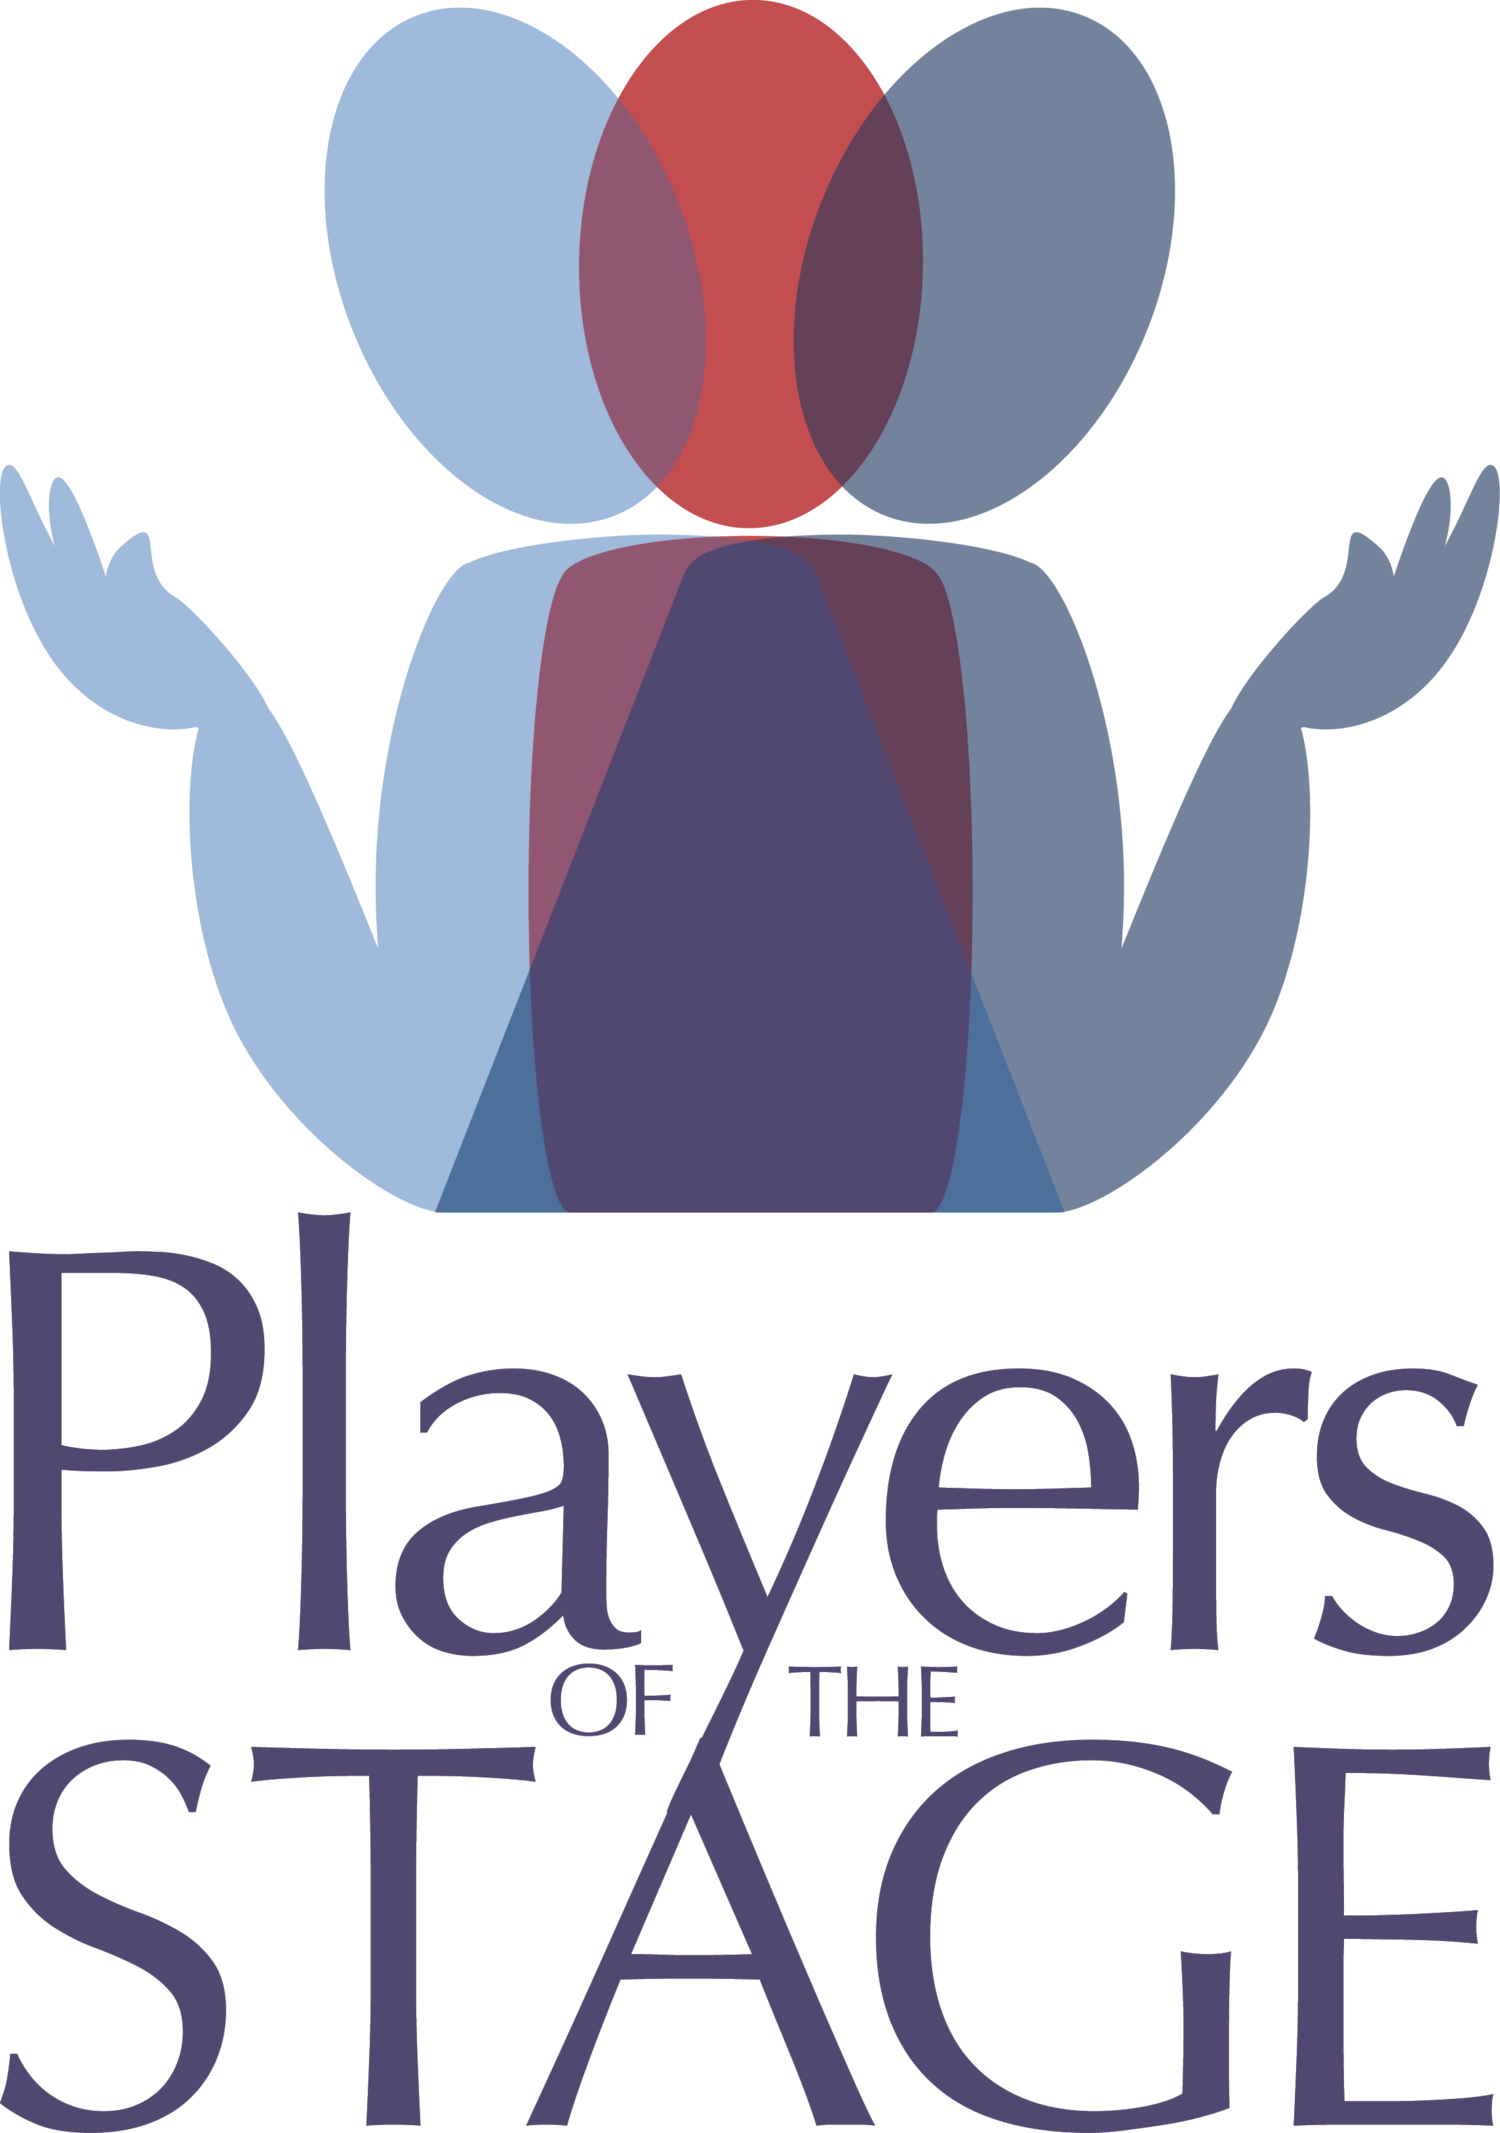 pyg on fall players of the stage players of the stage